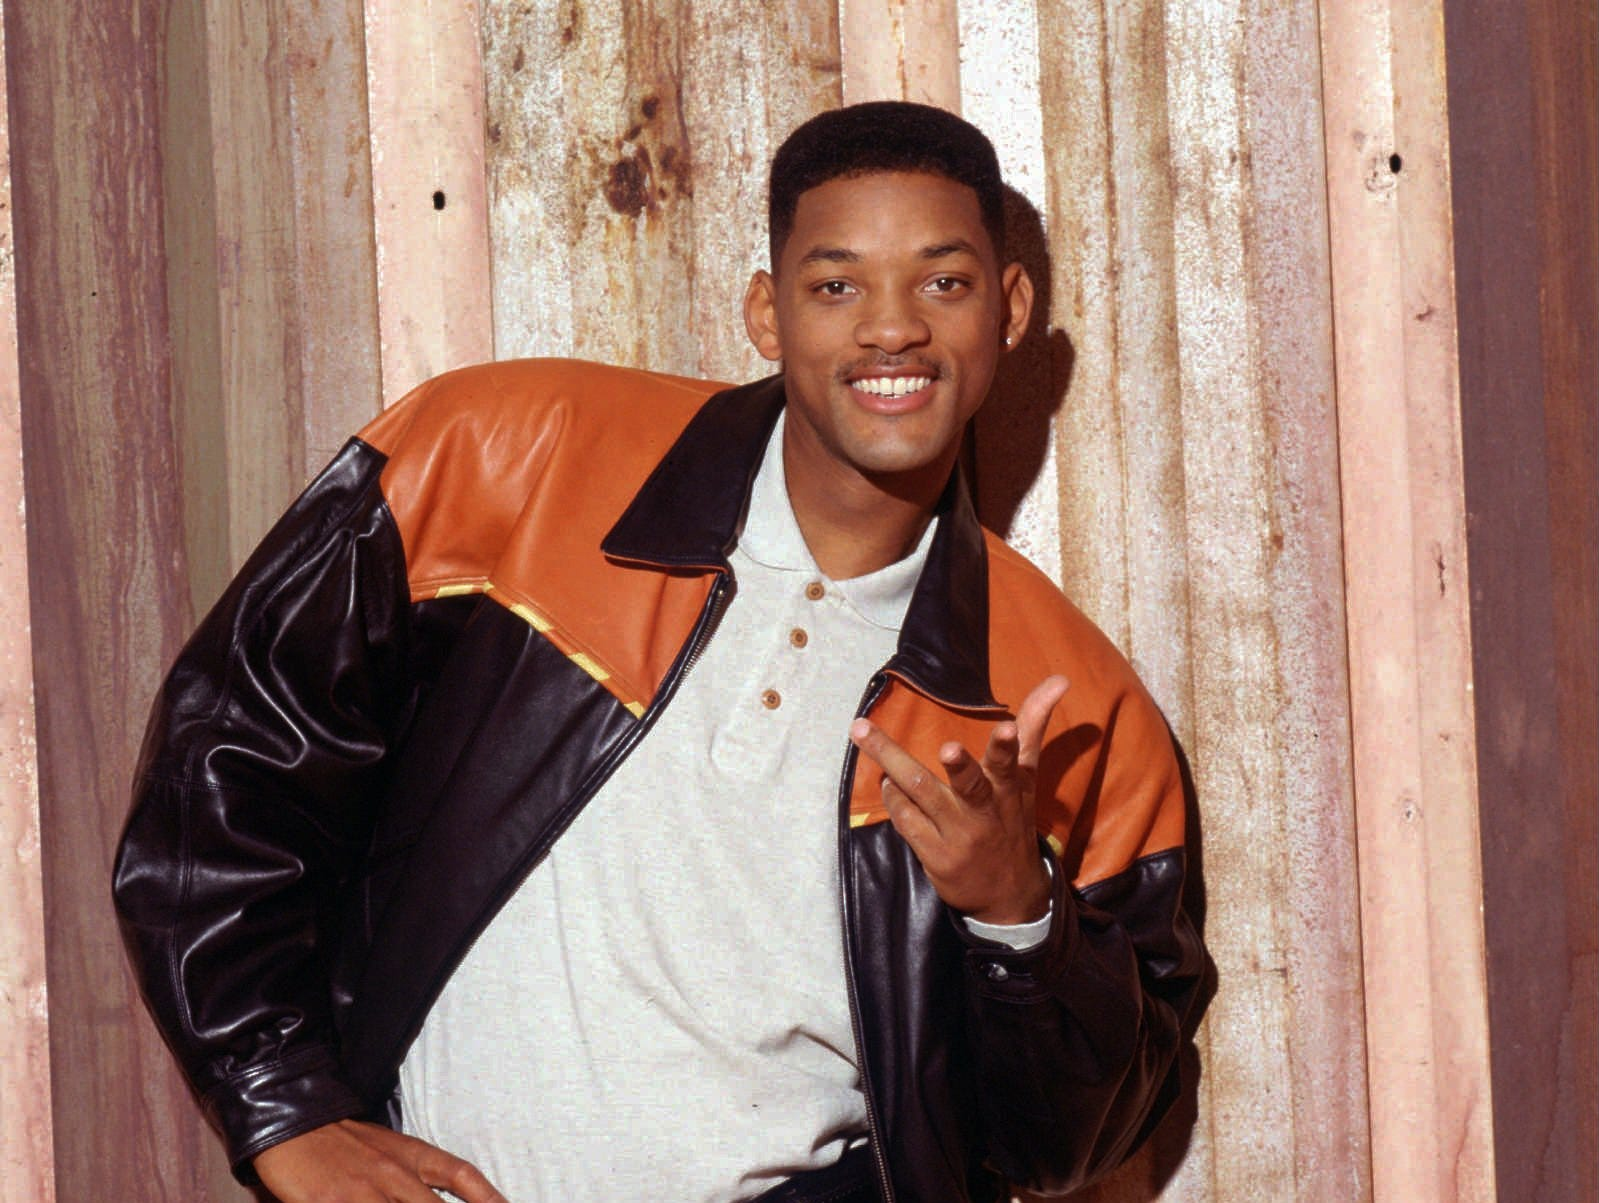 "NBC109 9/27/94 -- 'THE FRESH PRINCE OF BEL-AIR' -- TELECAST DATES: Mondays (8-8:30 p.m. ET) -- Generic Art-- PICTURED: Will Smith. --  A FRESH LOOK-- Now in its fifth season, ""The Fresh Prince of Bel- Air"" has remained the top-rated 8 p.m. comedy on anynetwork in women and adults 18-49 for two consecutive years (1992-93, 1993-94 seasons). The series is the top-rated program in its time period in homes, adults 18-34, adults 18-49, teens and kids.  Ross Bagley (""The Little Rascals"") joins the cast this year as Nicky Banks, Will's (Will Smith) youngest cousin.  NBC PHOTO BY: Chris Haston. ORG XMIT: NBC109"